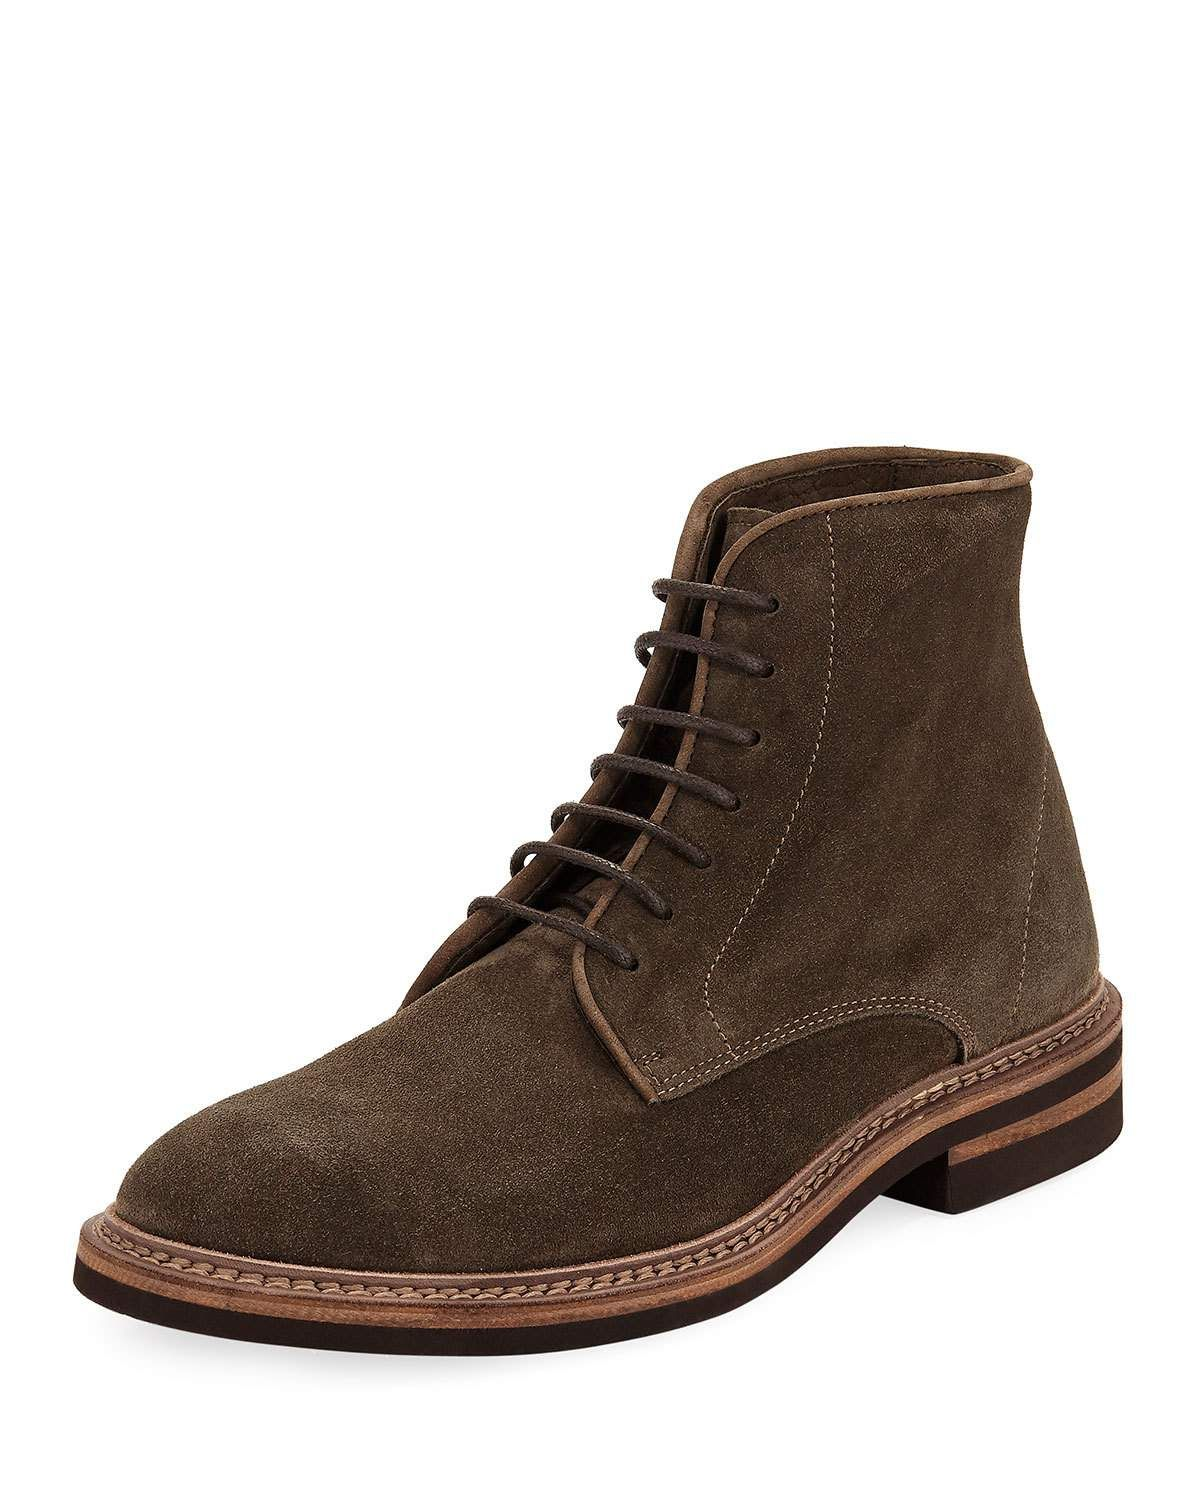 Brunello Cucinelli Leather Lace-Up Boots sale shop for oHOCQ